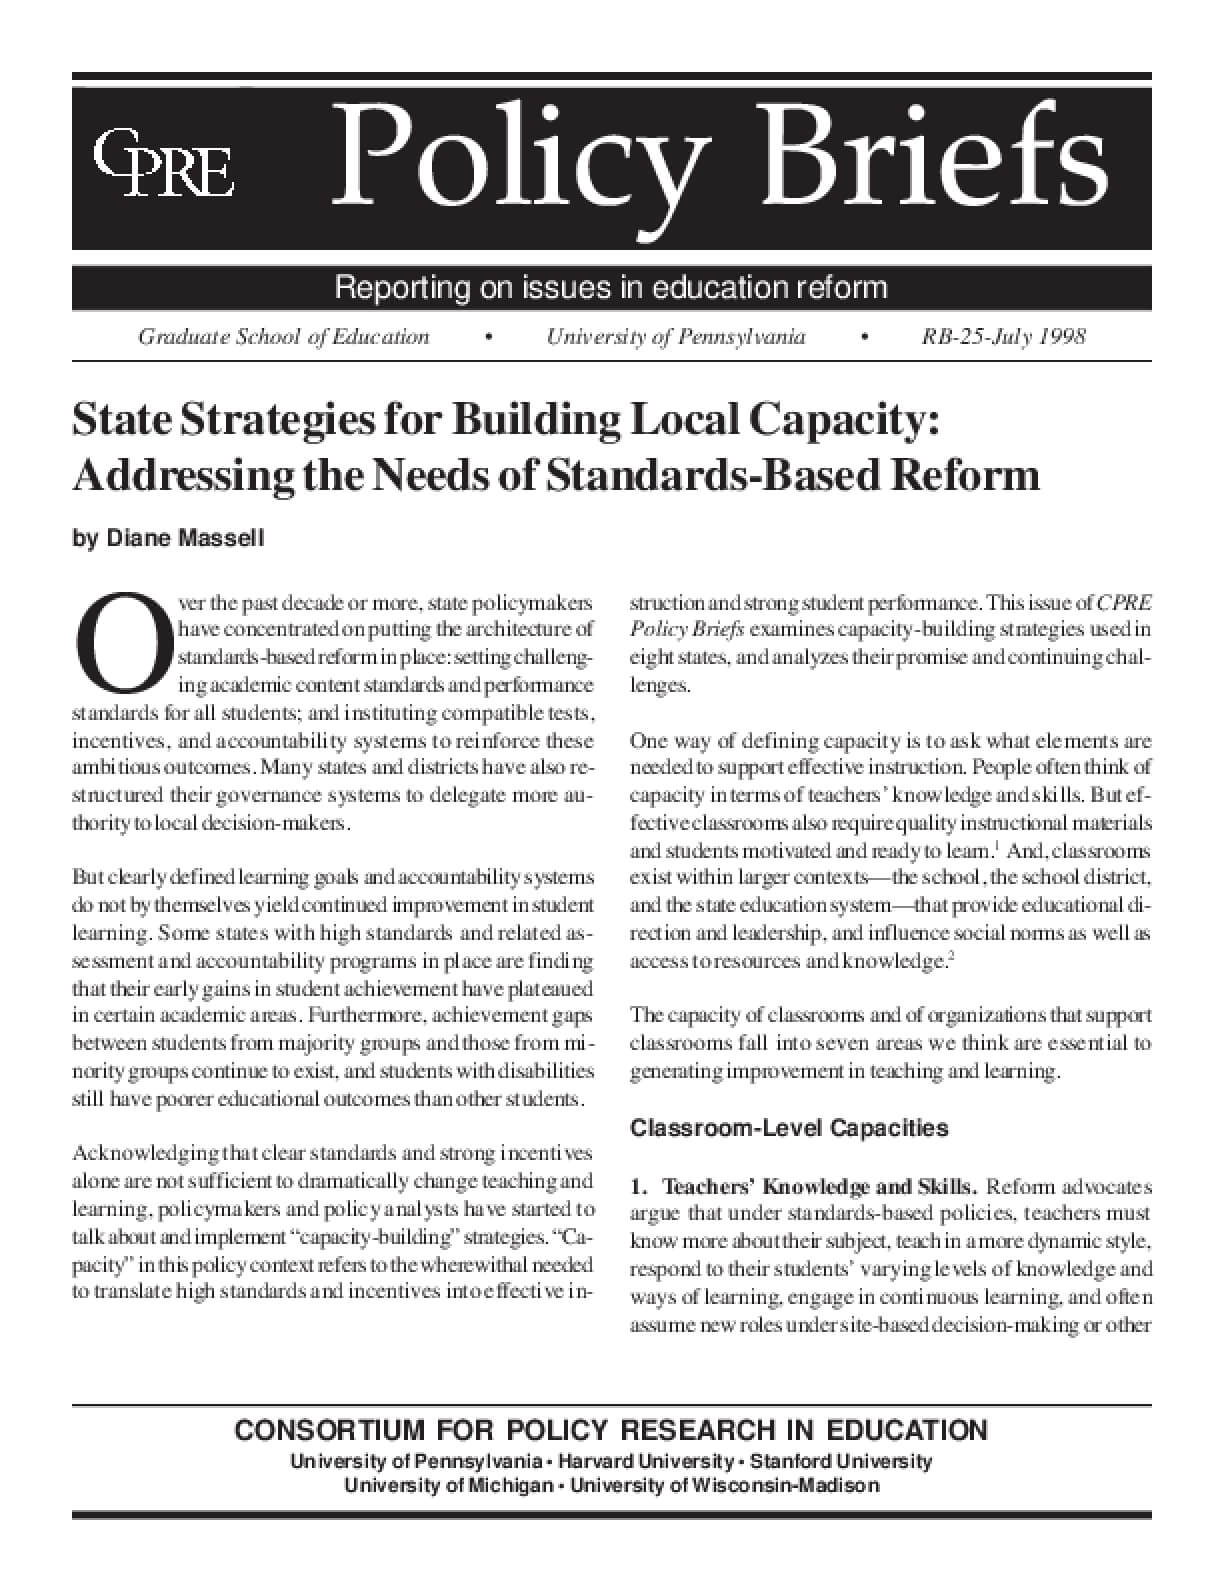 State Strategies for Building Capacity: Addressing the Needs of Standards-Based Reform